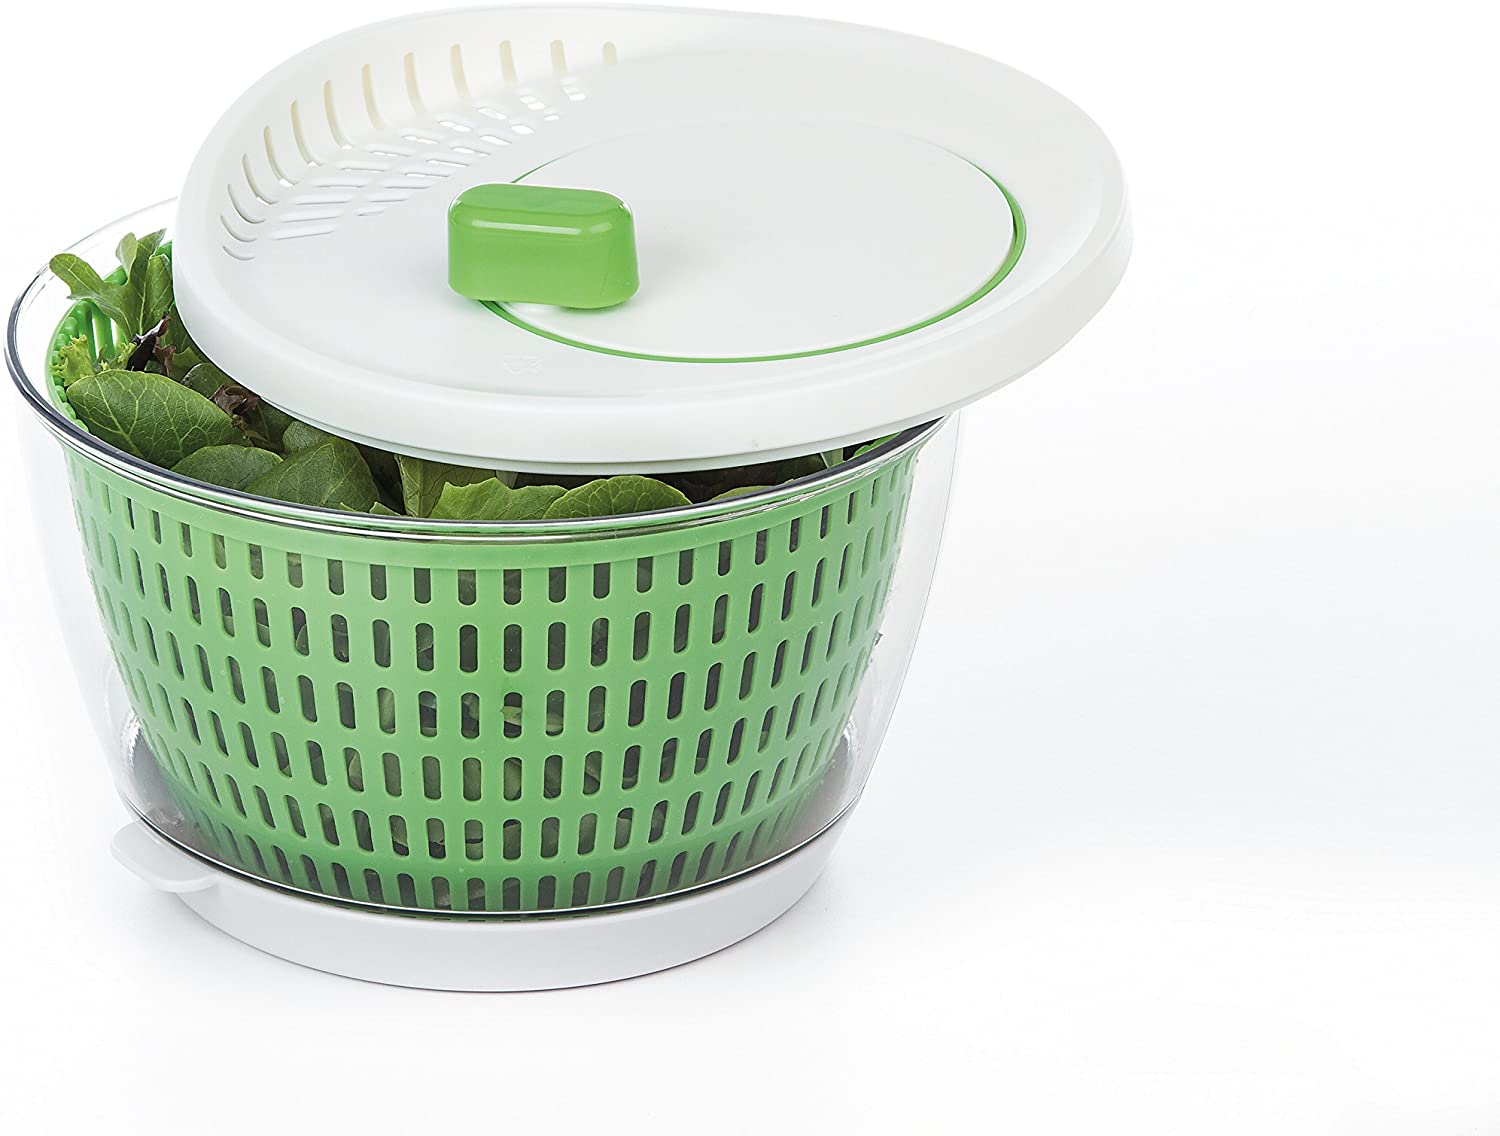 Prepworks by Progressive Flow Through Salad Spinner with Removable Drip-Catch Base 3.5 Quart